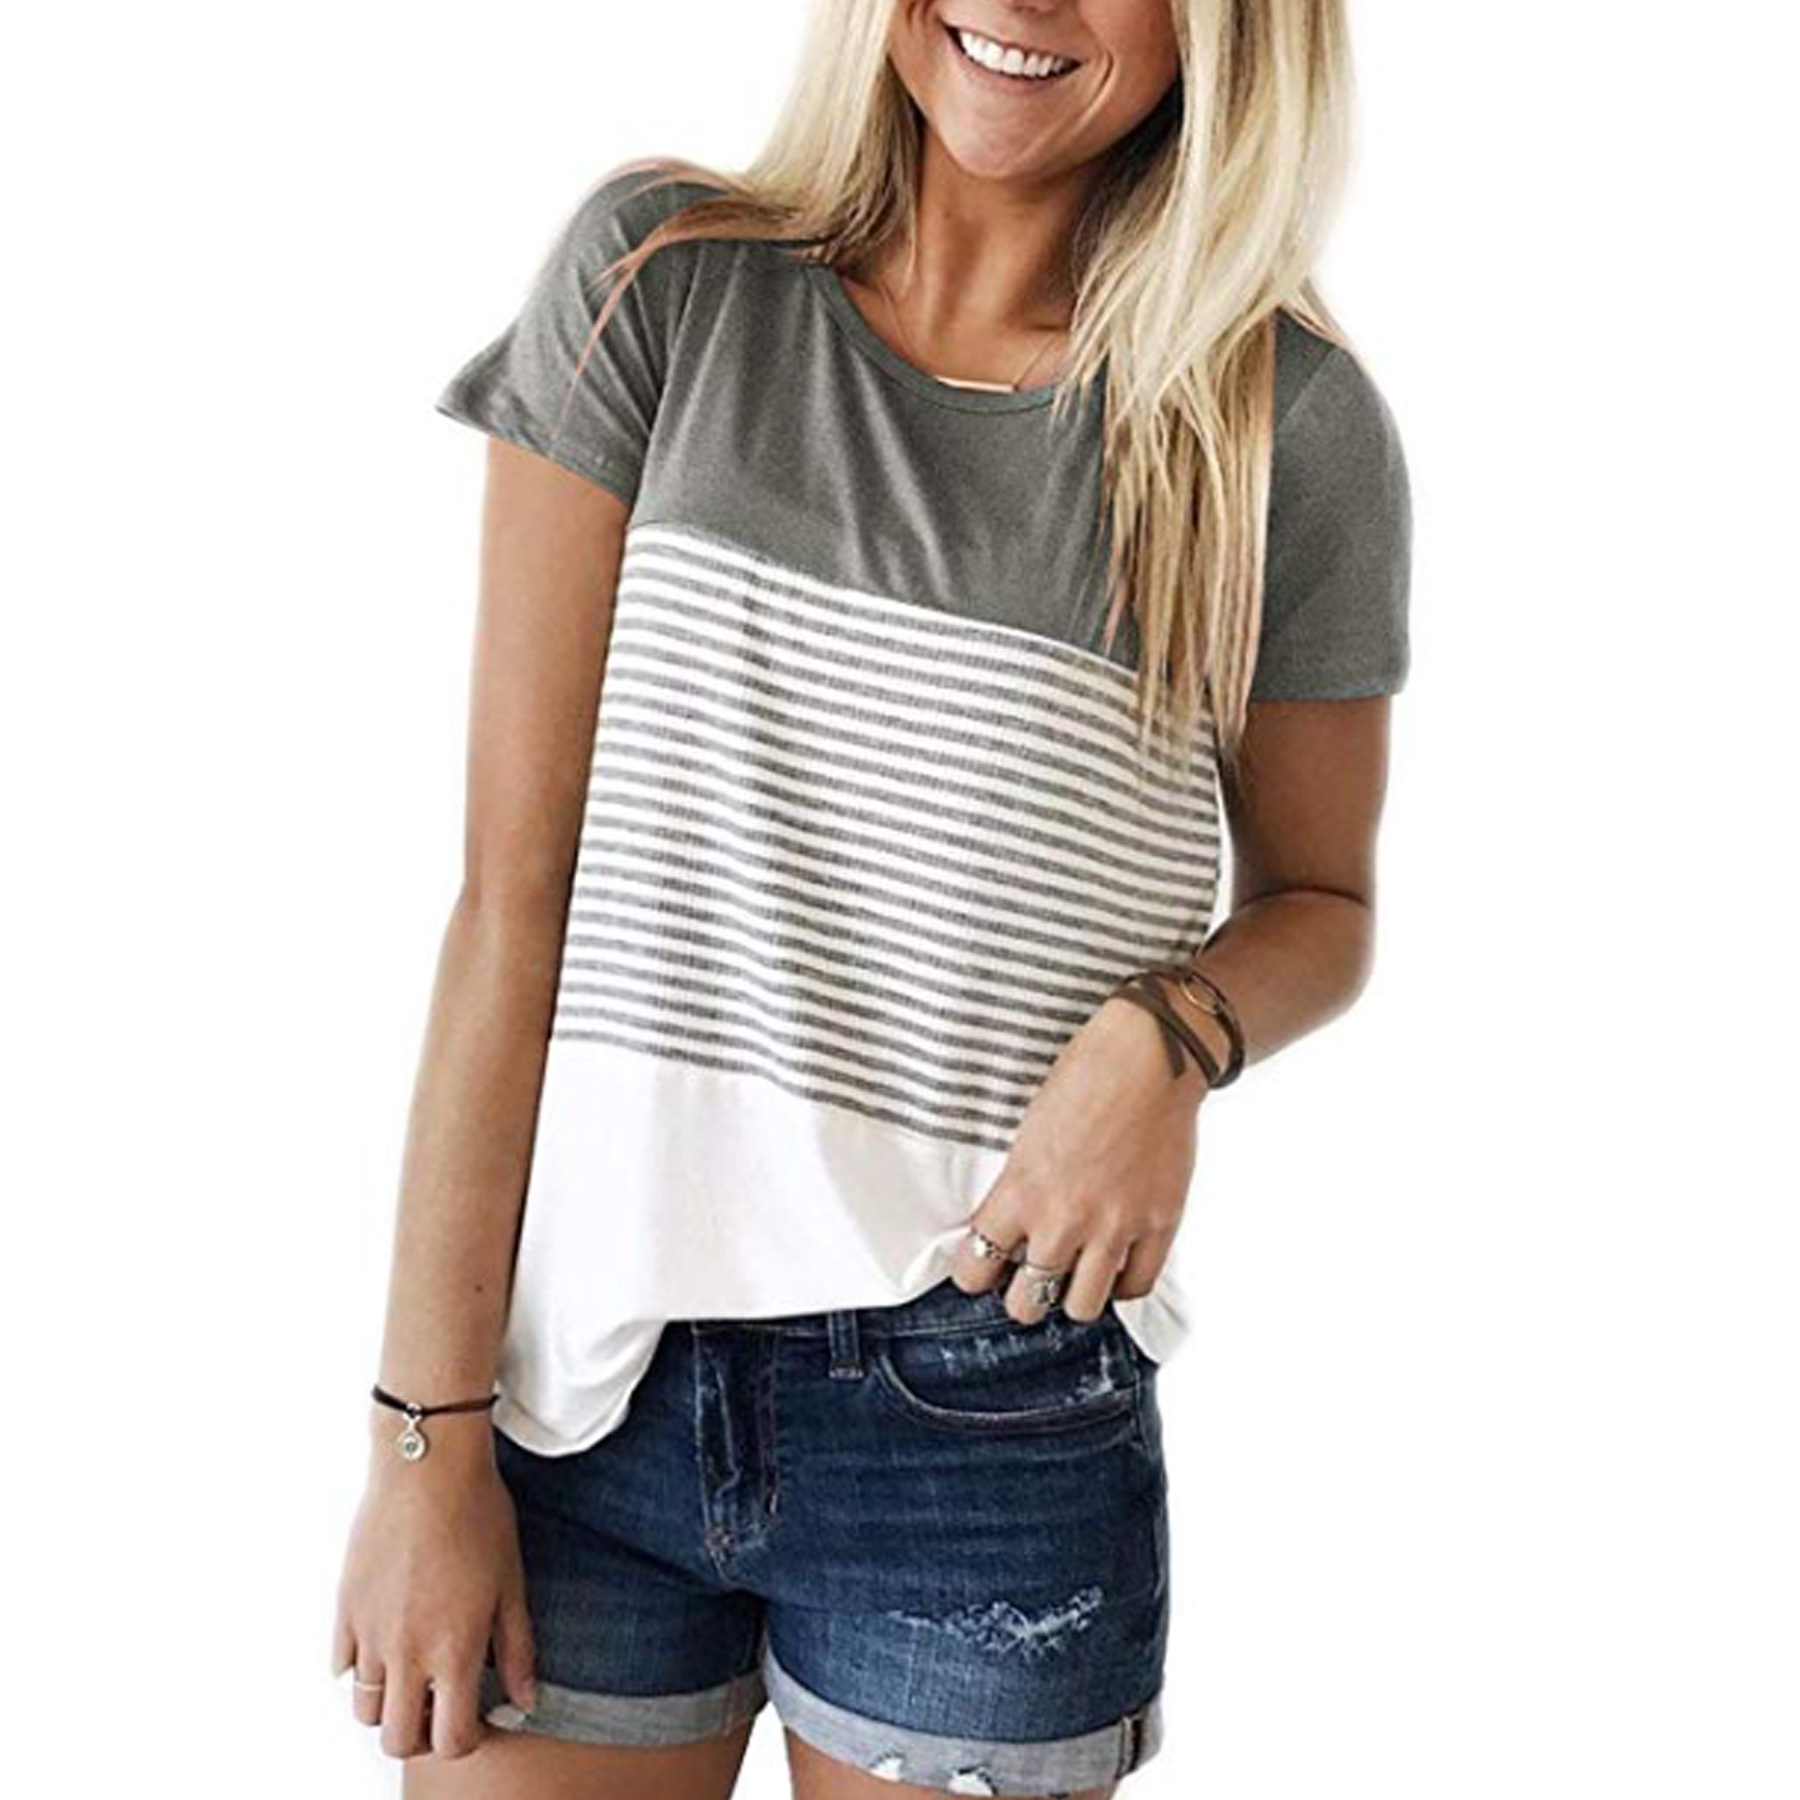 c852a8ad6ff1 40% Off Women's Short Sleeve Striped T-Shirt - Deal Hunting Babe